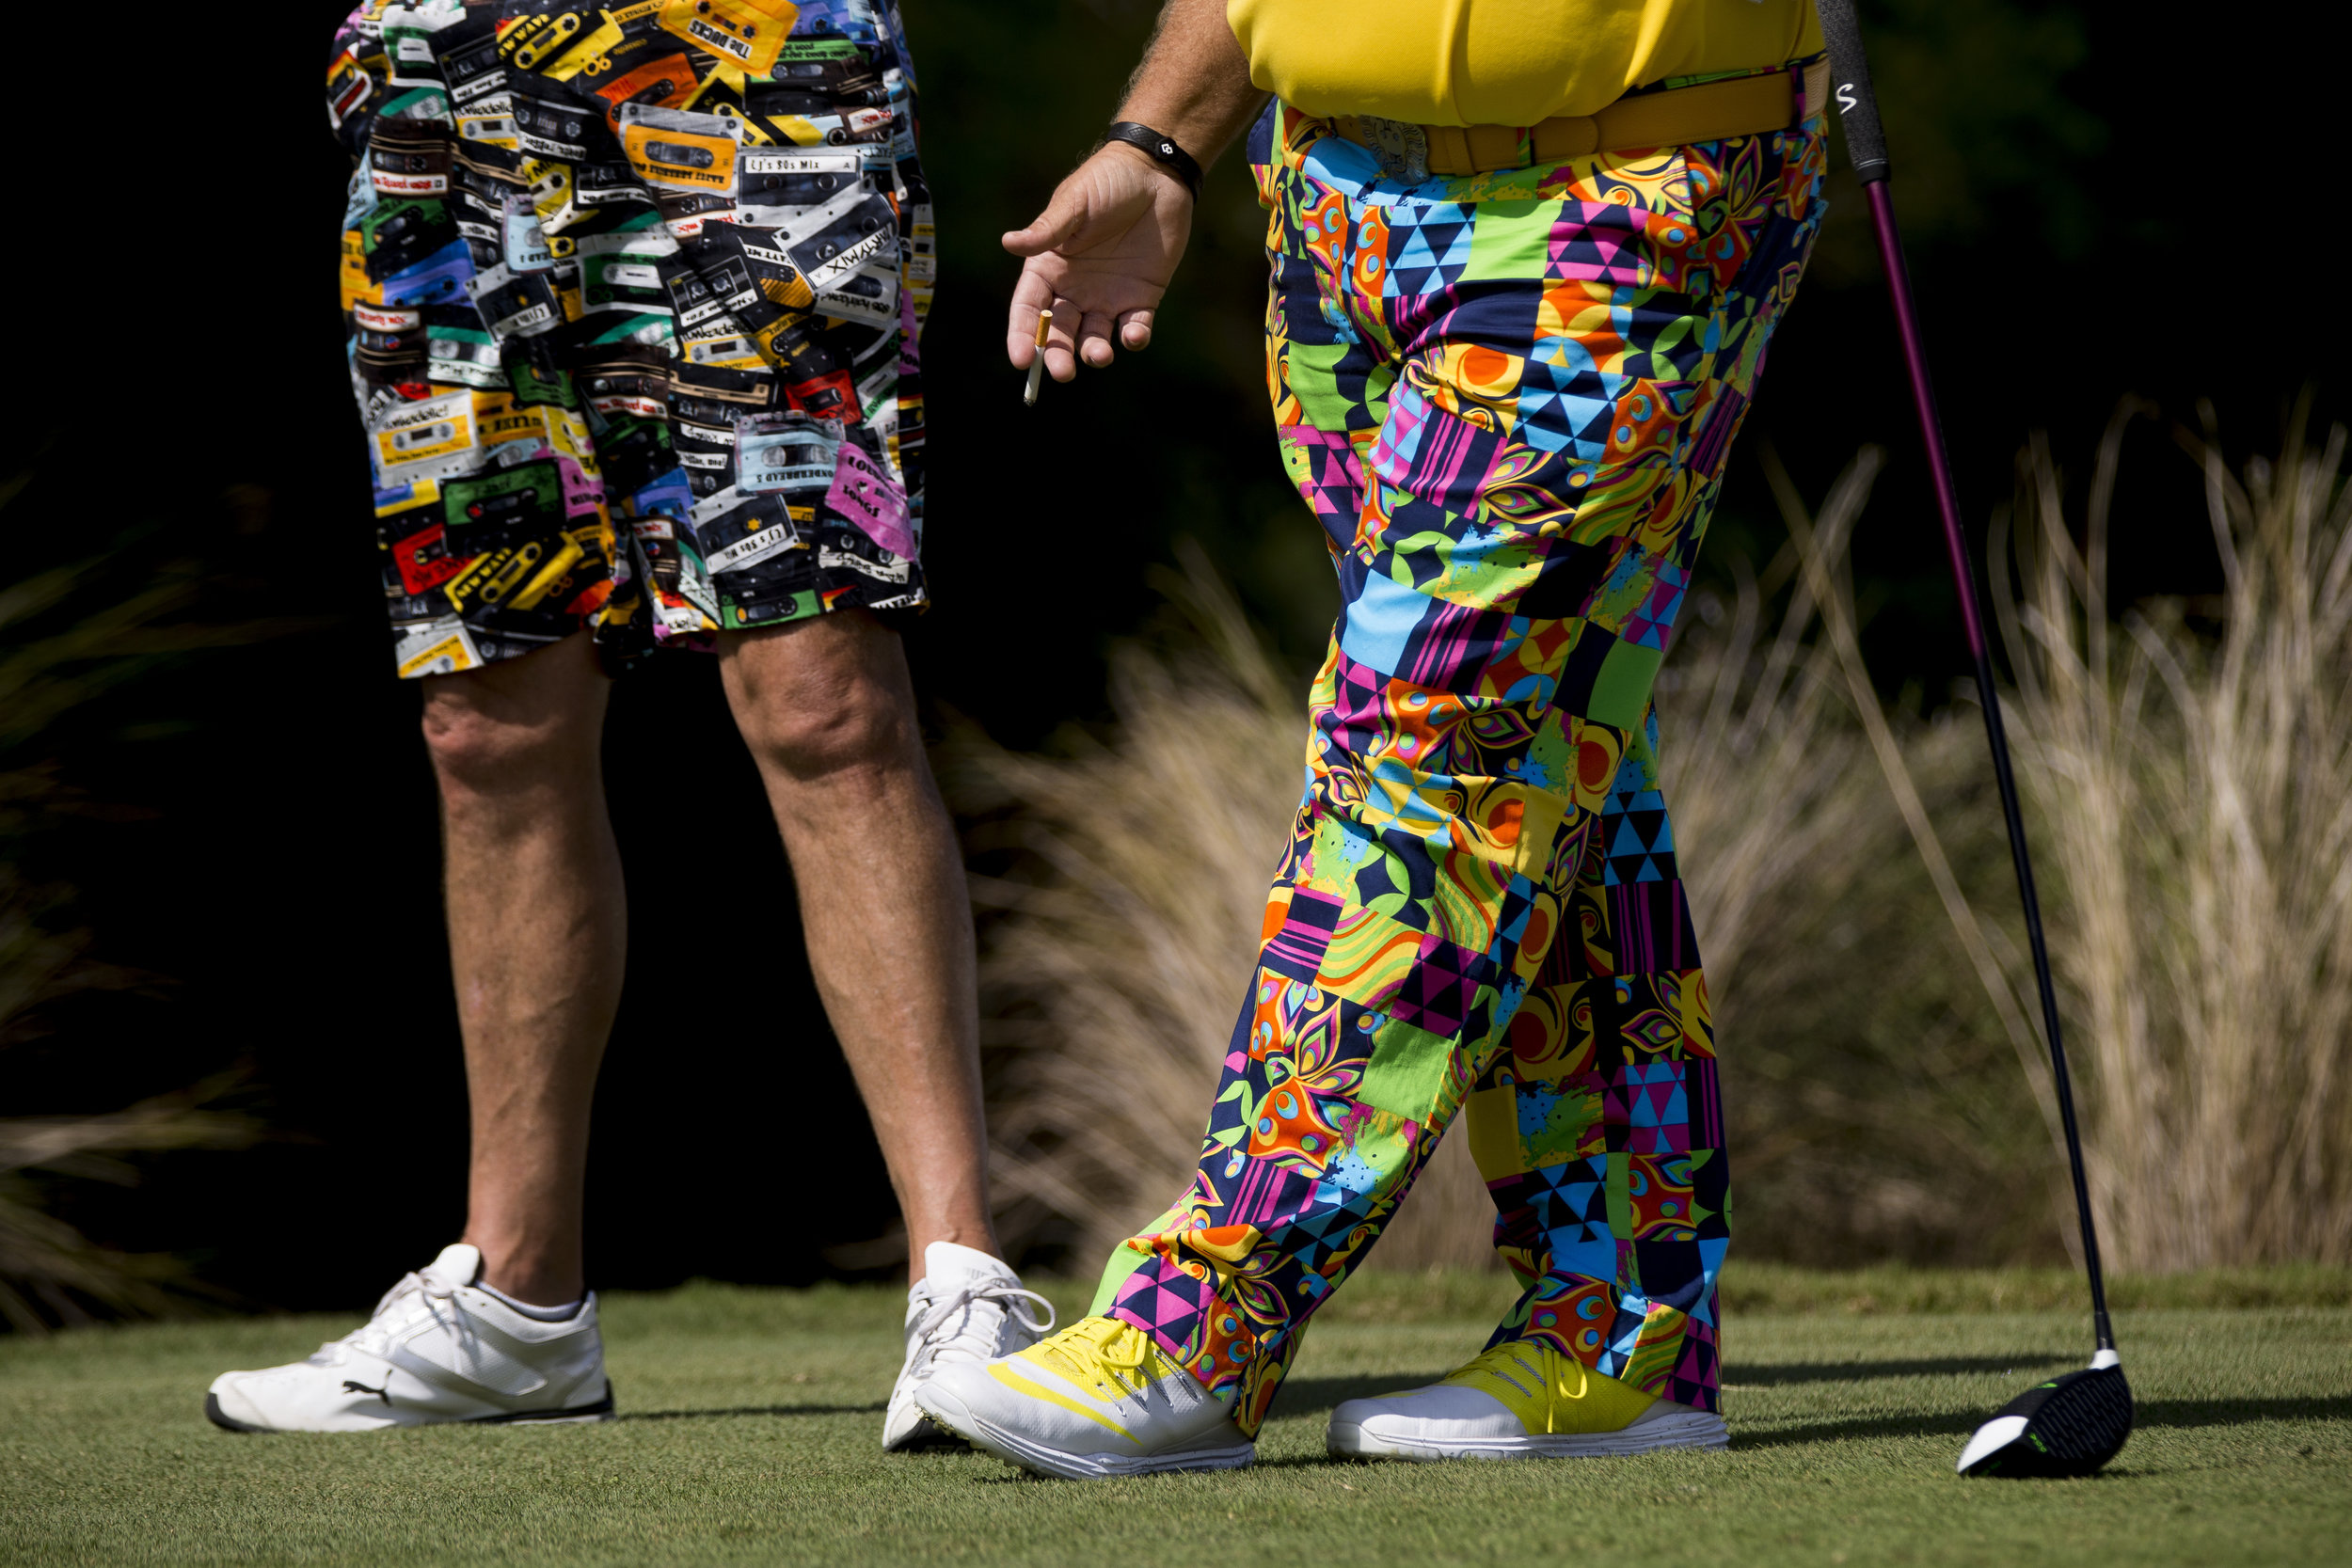 PGA Tour Pro John Daly, right, smokes a cigarette as he speaks with his caddy prior to teeing off during the Chubb Classic Pro-Am at TwinEagles Club Wednesday, Feb. 15, 2017 in Naples, Fla.